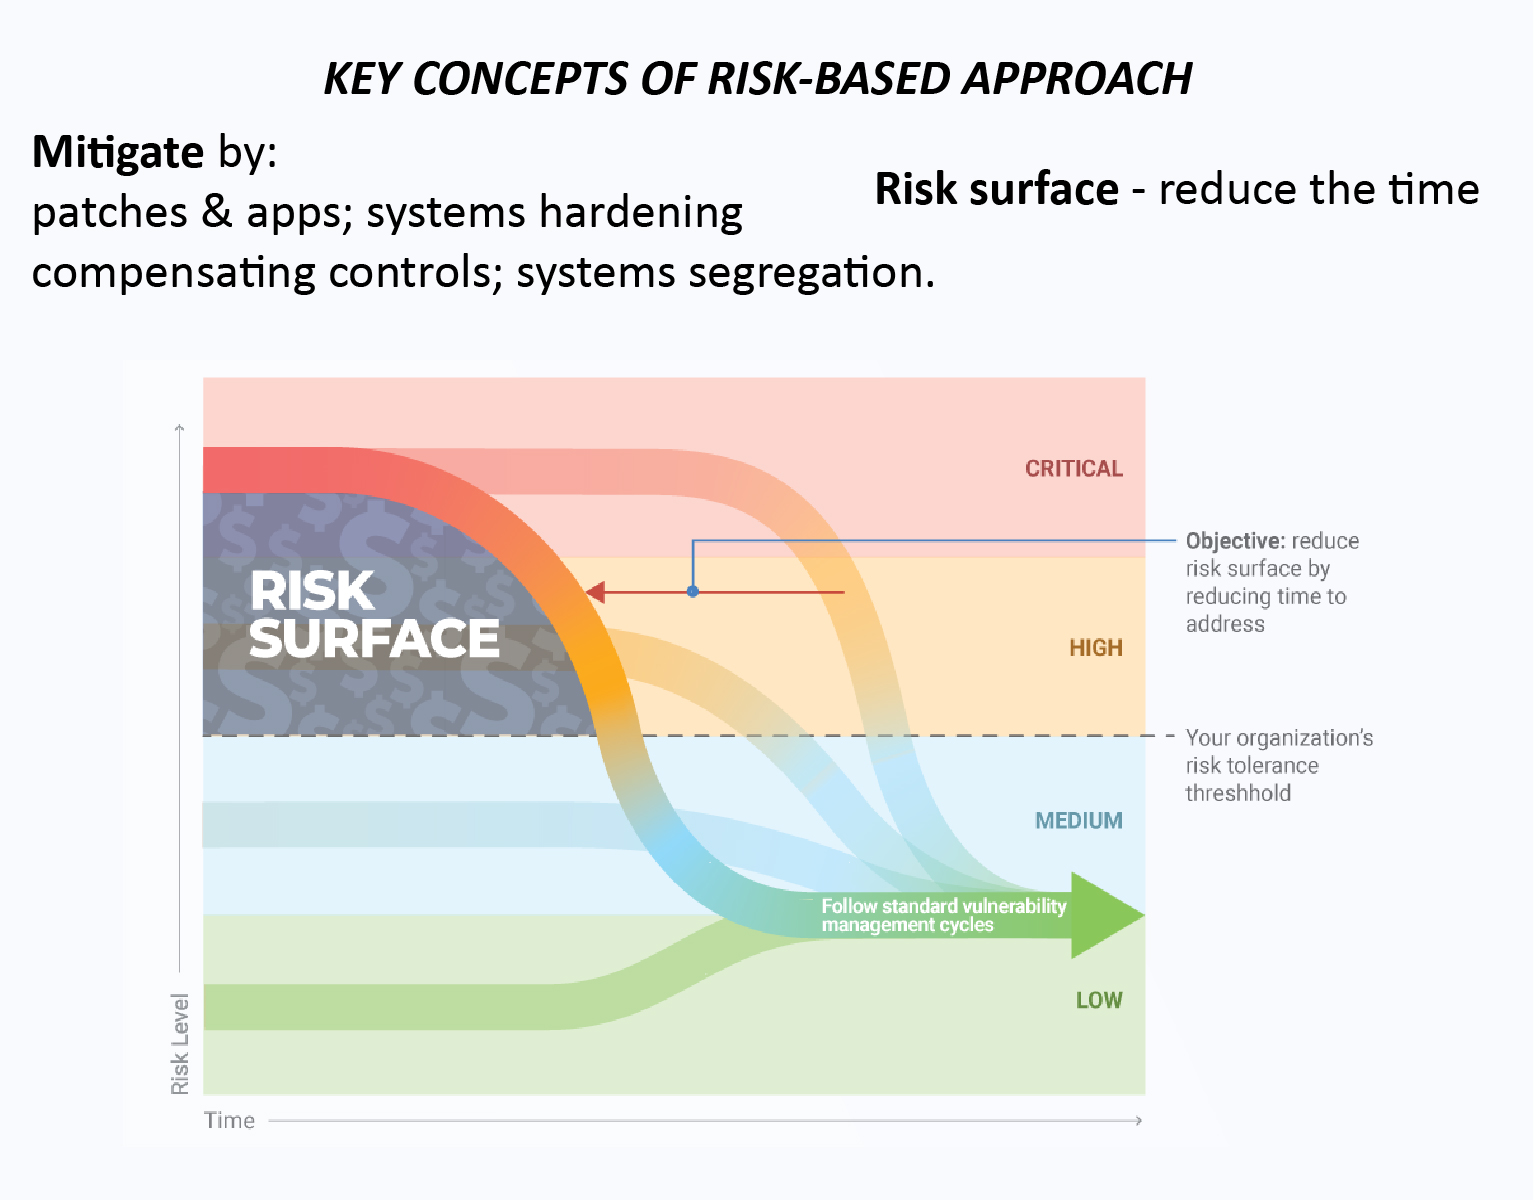 THE RISK-BASED APPROACH BECOMES A STANDARD IN VULNERABILITY MANAGEMENT